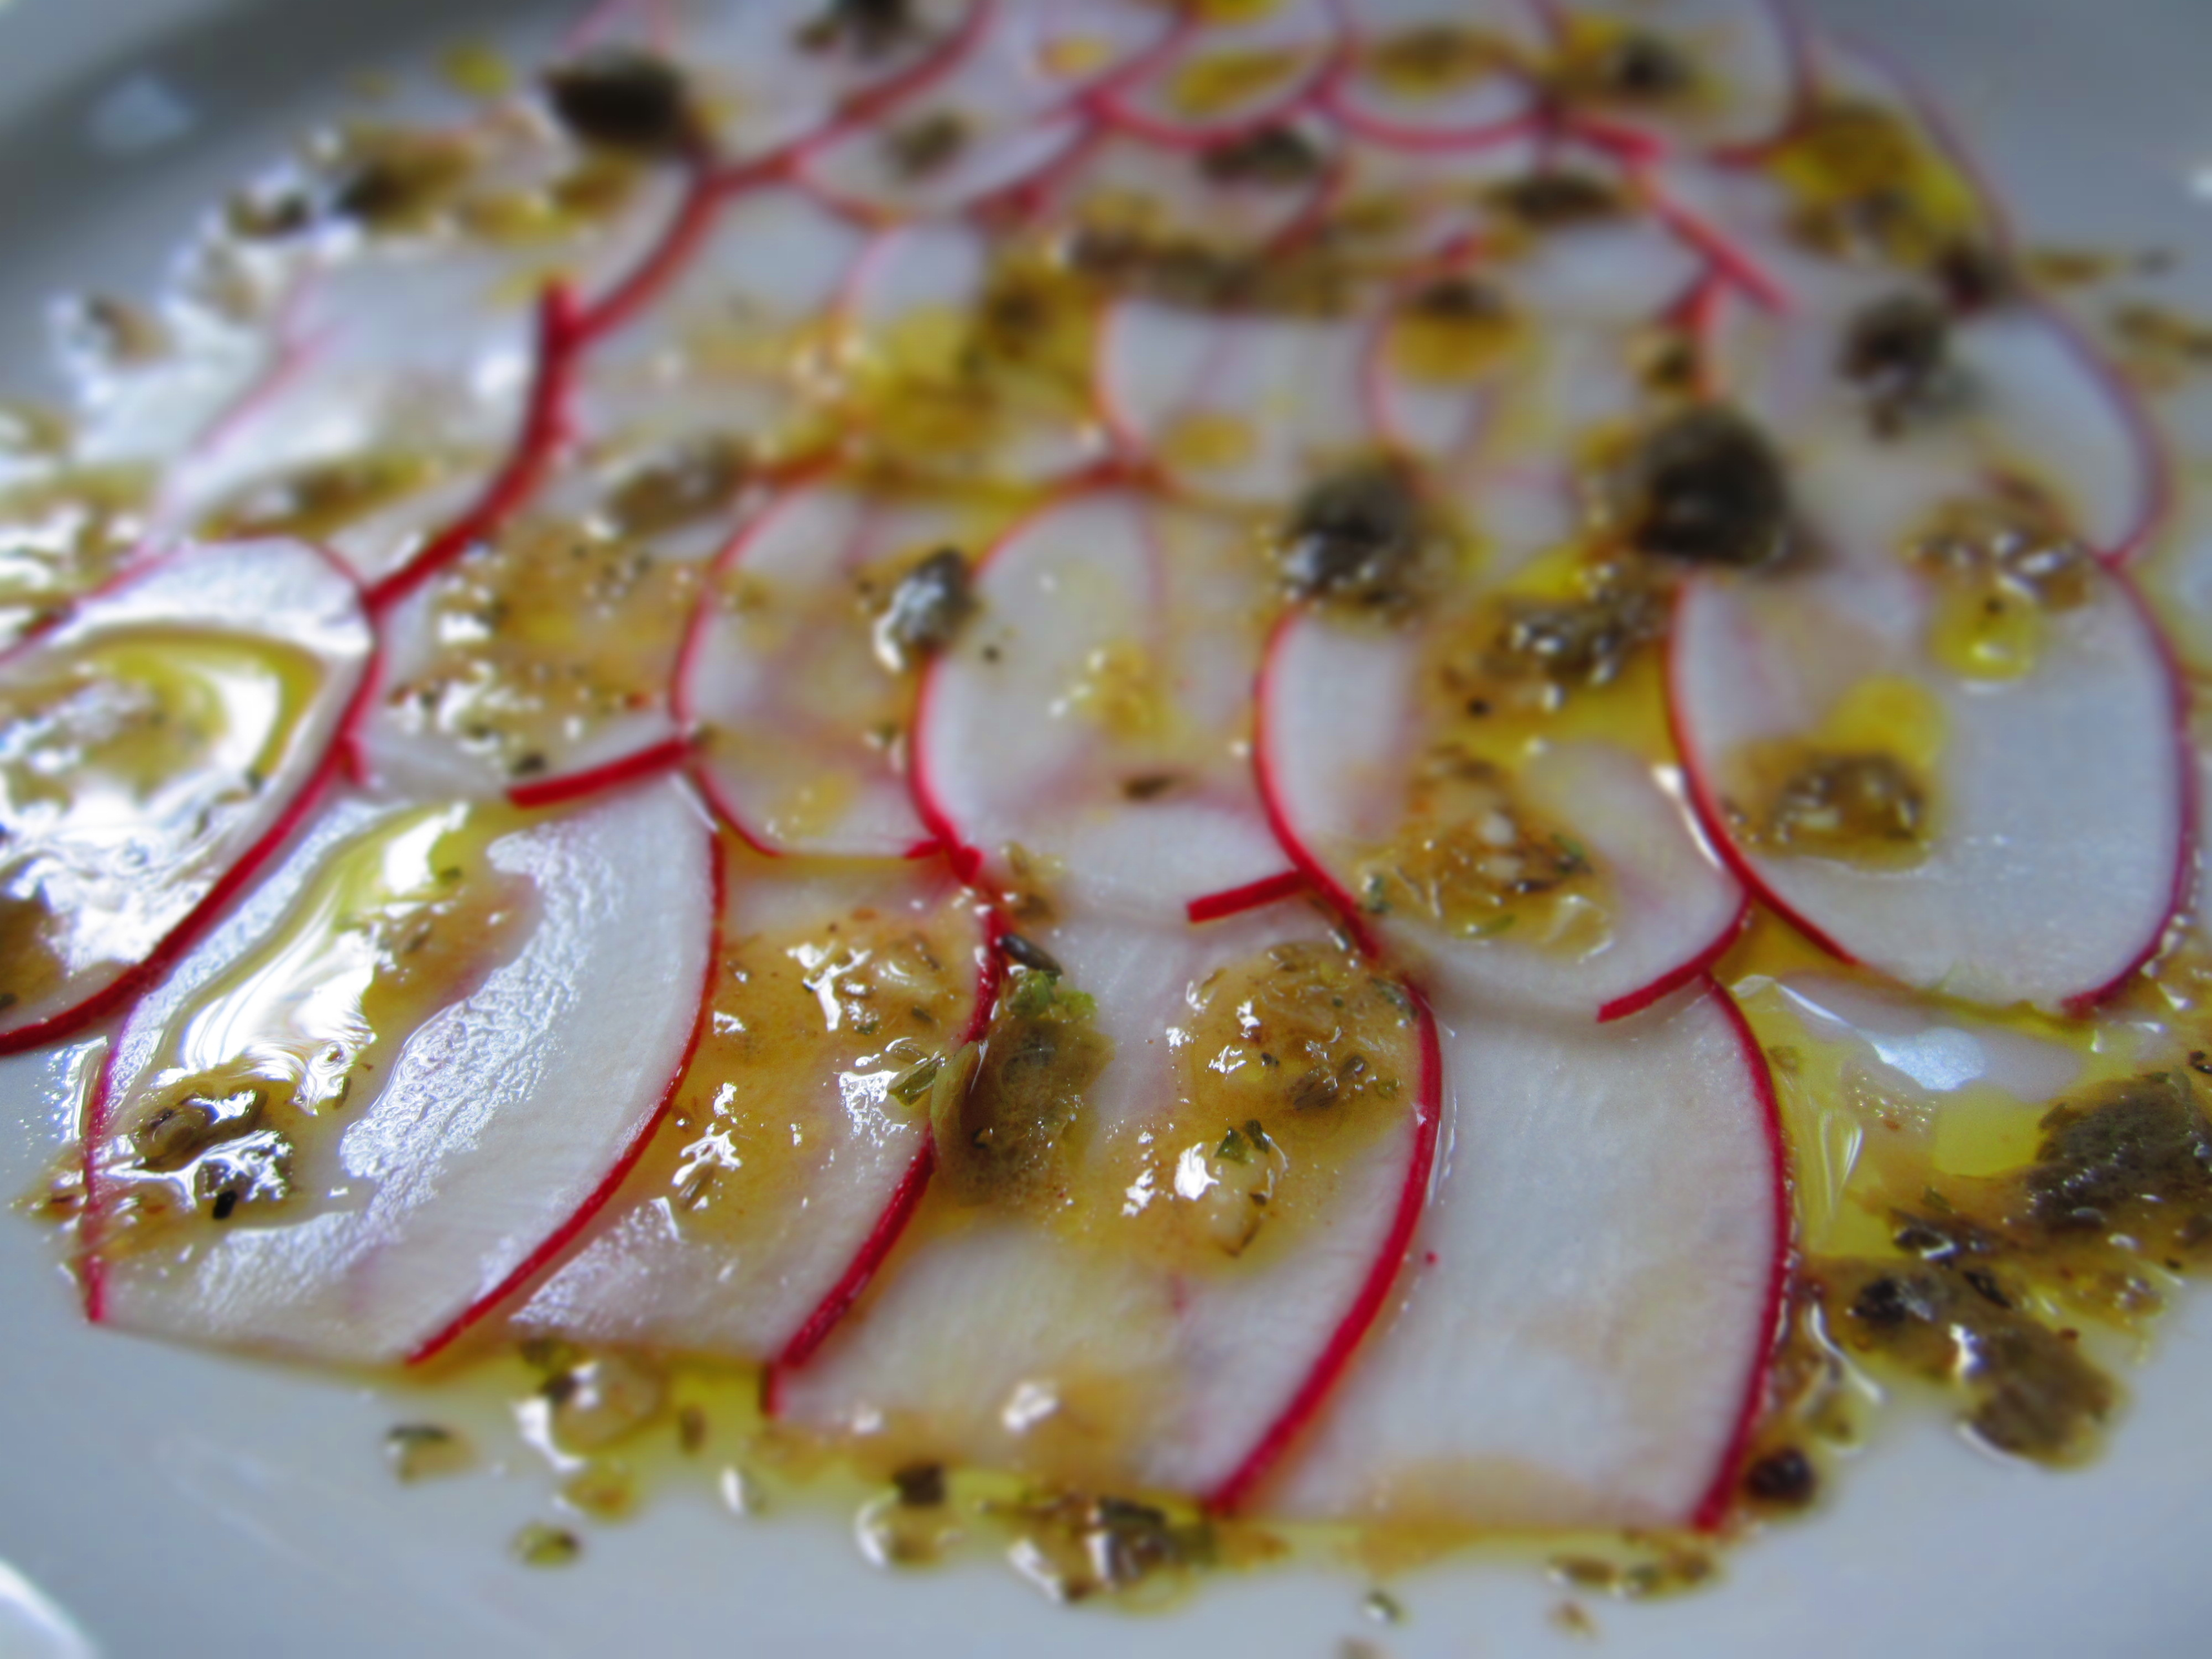 Radish Carpaccio with capers and herbs vinaigrette.